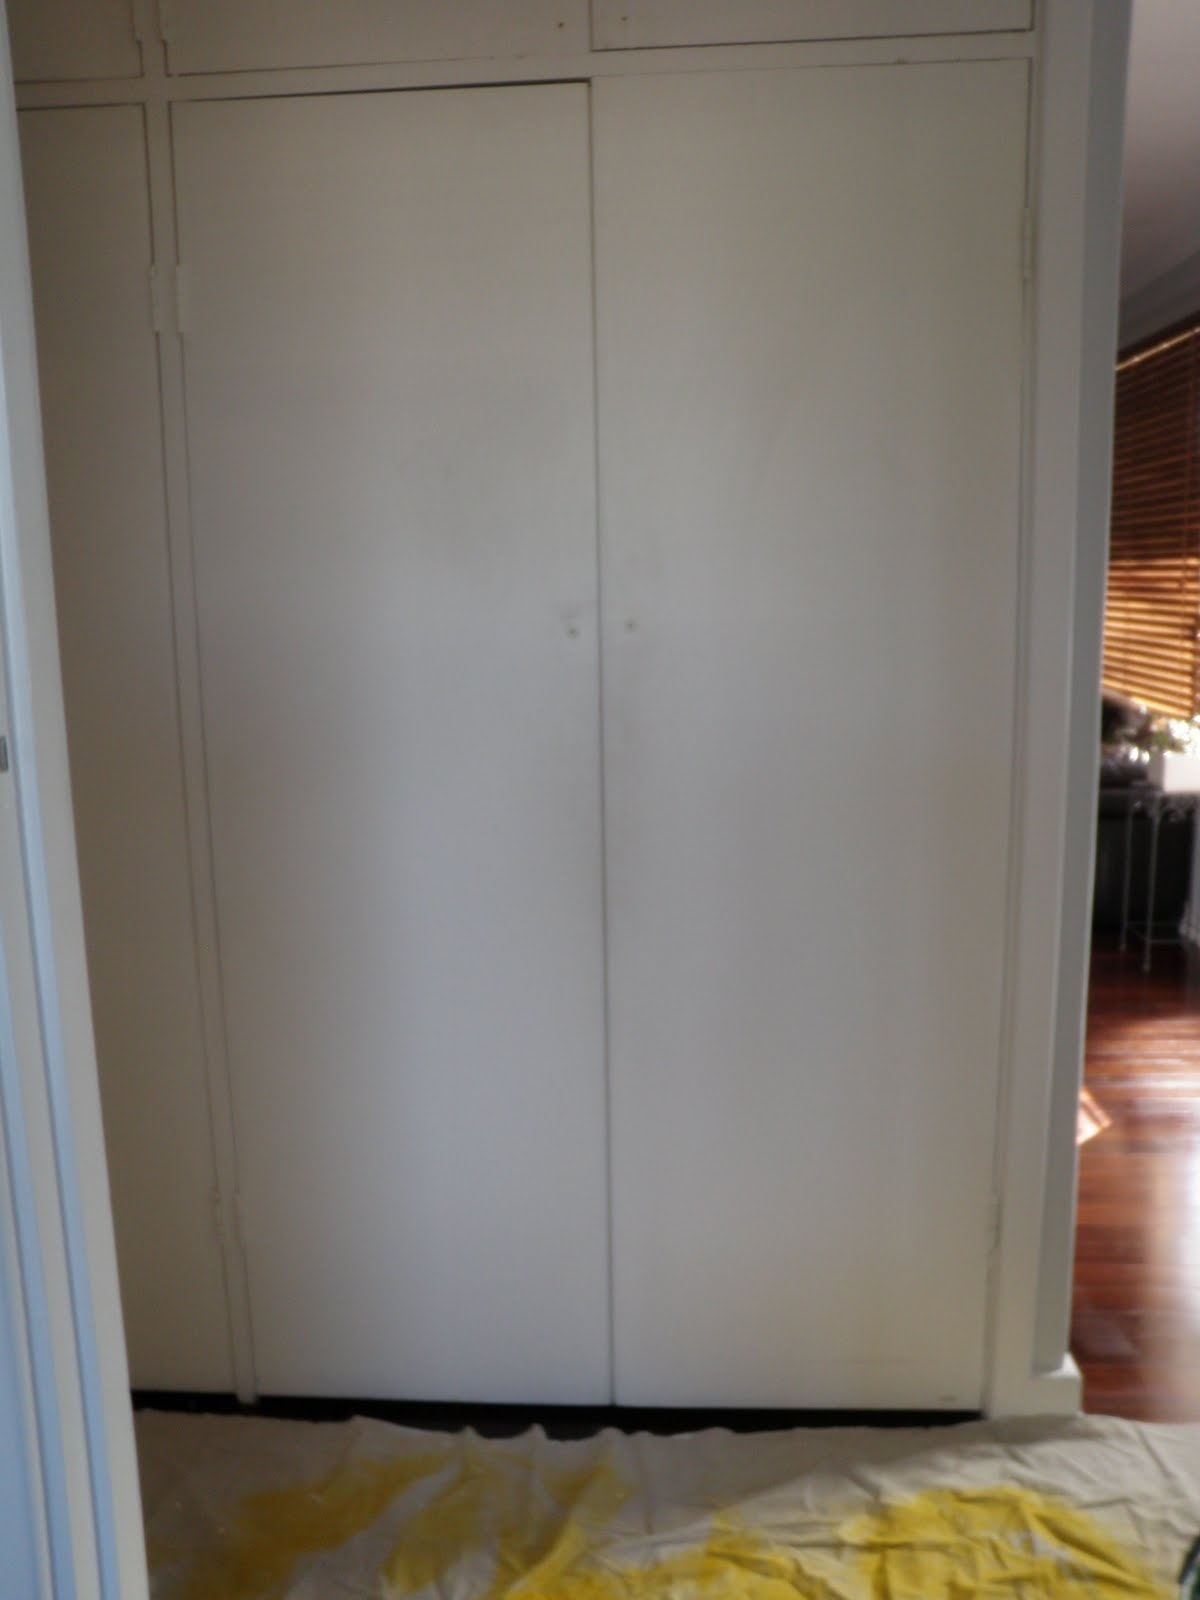 Jarrah Cupboard Doors Jarrah Wardrobe Doors In Hallway Cupboard Doors (Image 15 of 25)